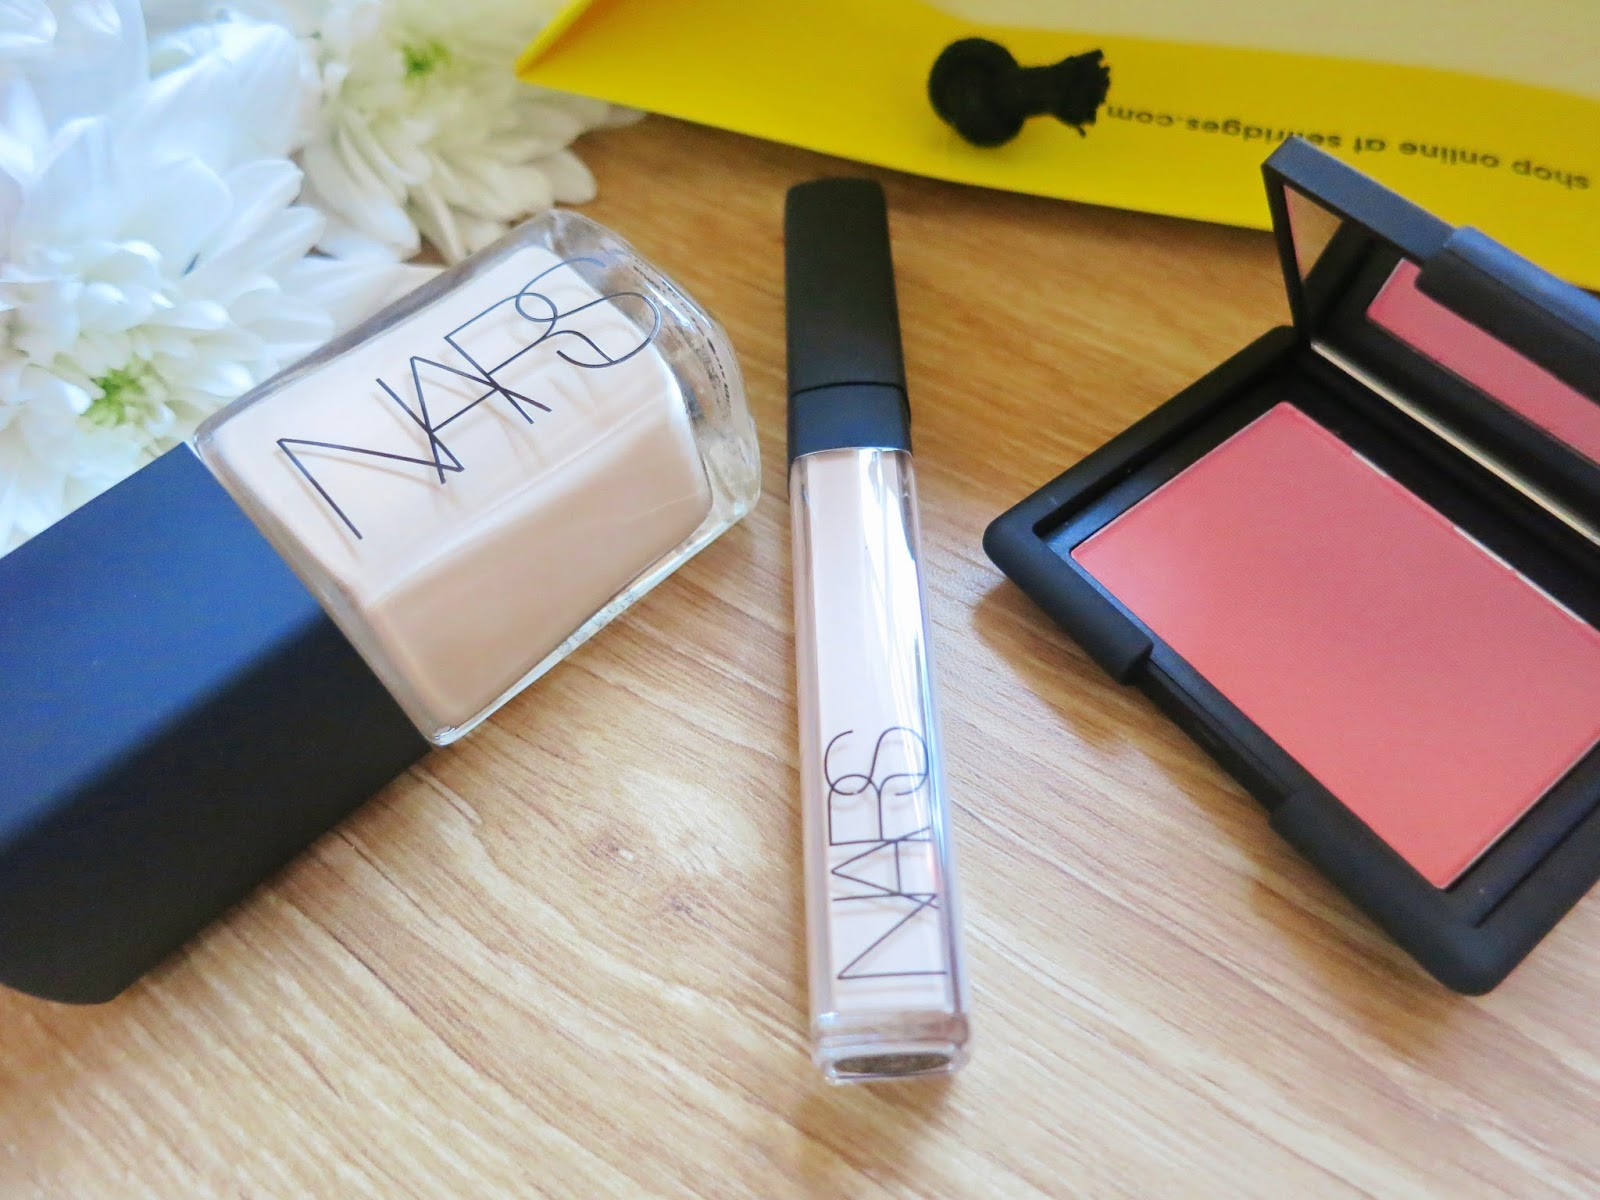 NARS Beauty Haul Nars Sheer Glow Foundation, Nars Radiant Creamy Concealer, Nars Blush Deep Throat